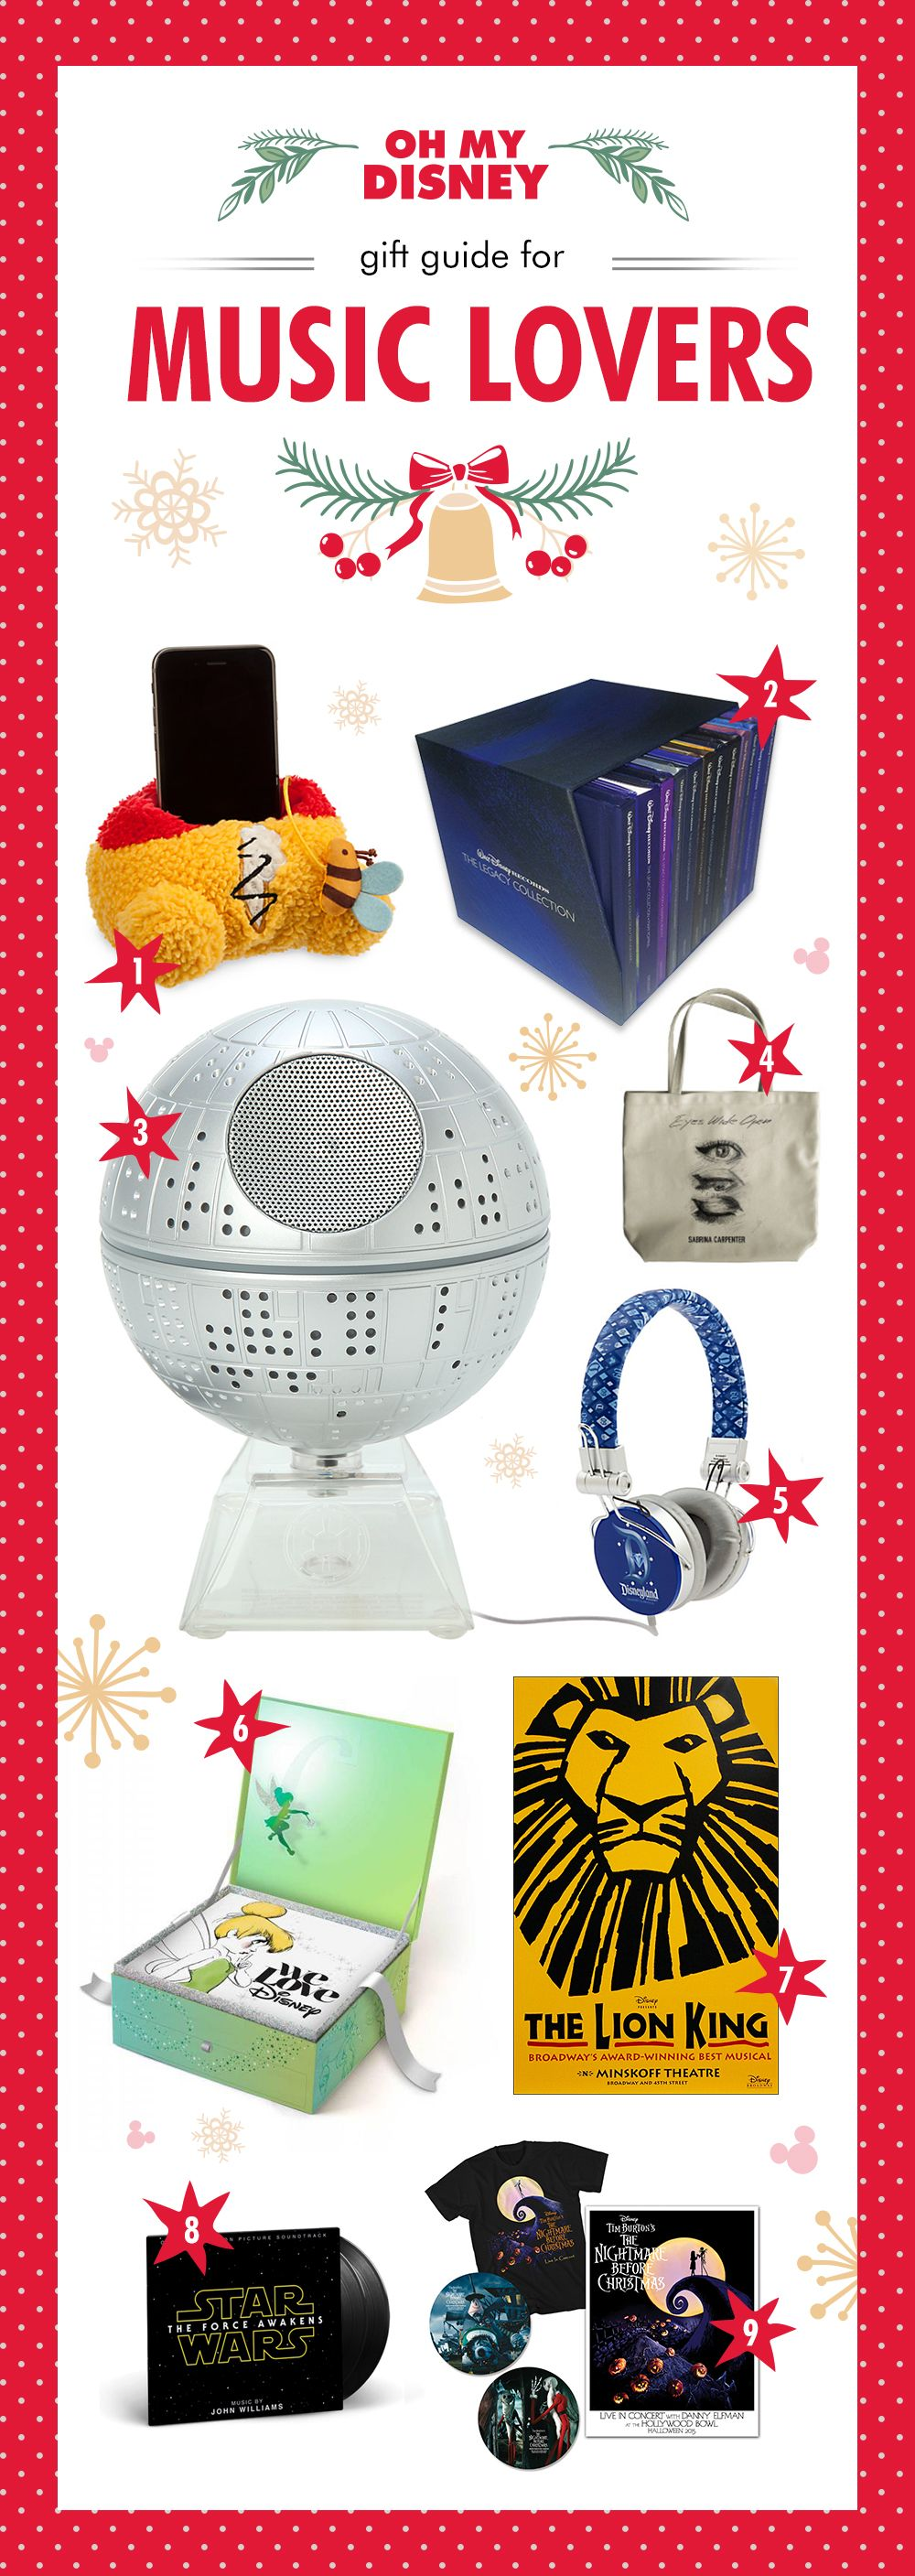 The Ultimate Disney Gift Guide for Music Lovers | Oh My Disney | Music